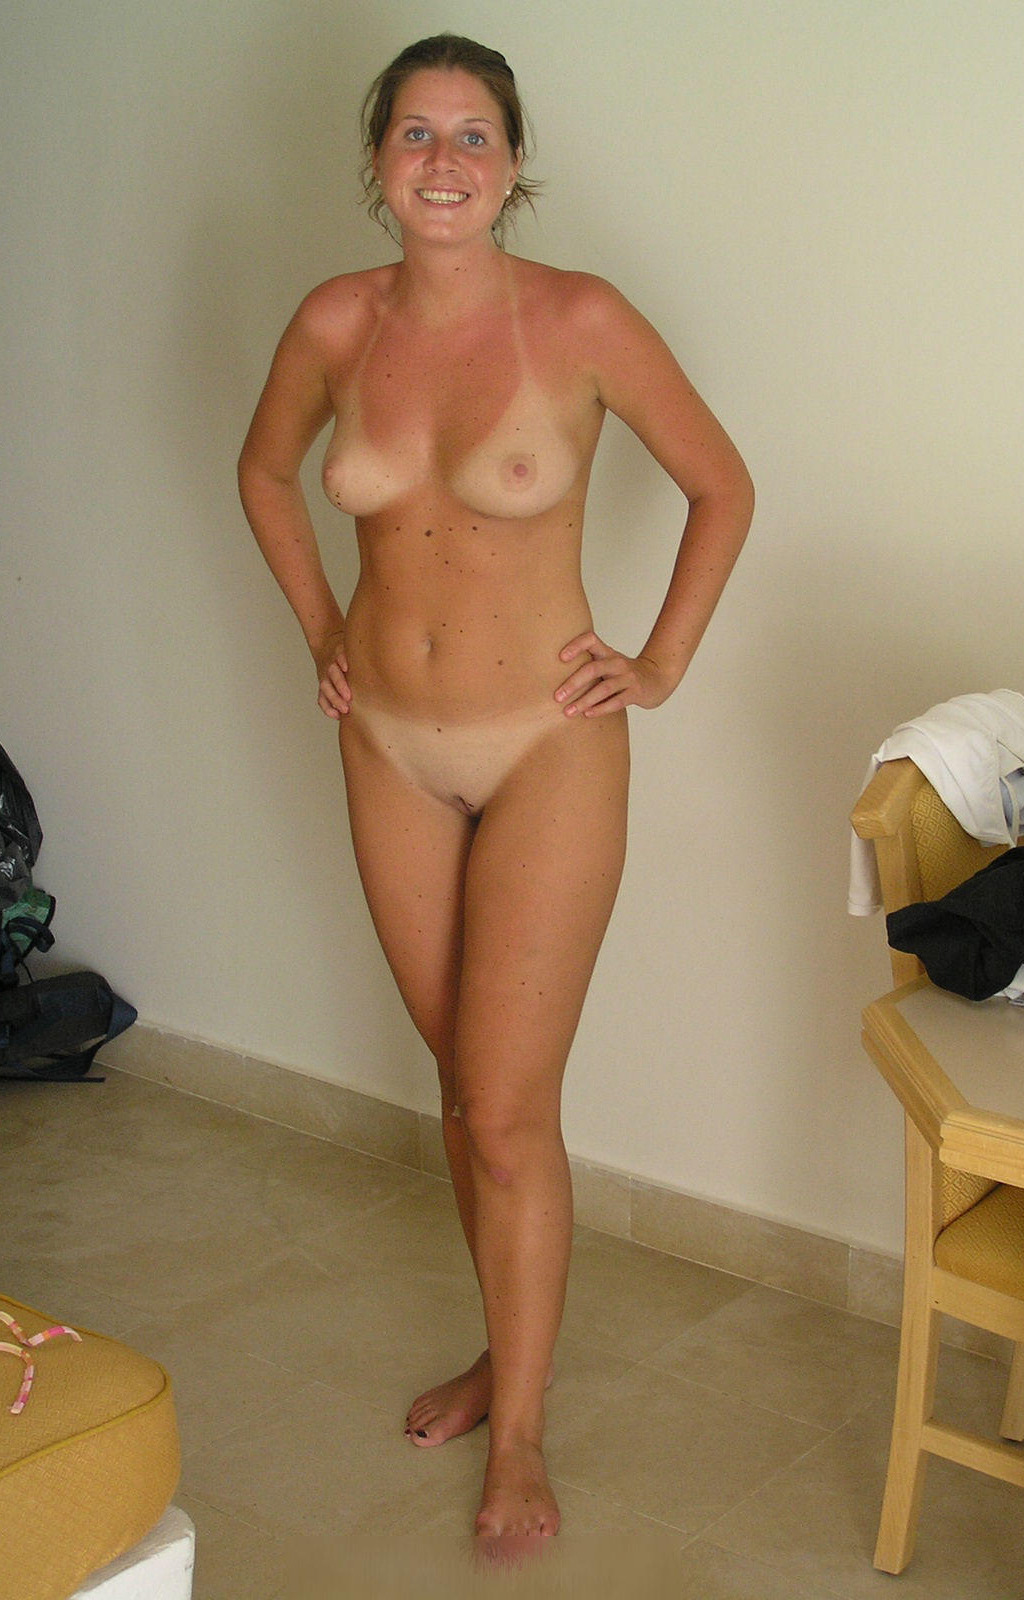 womennextdoor:  For more visit: womennextdoor   Submit your pics HERE!